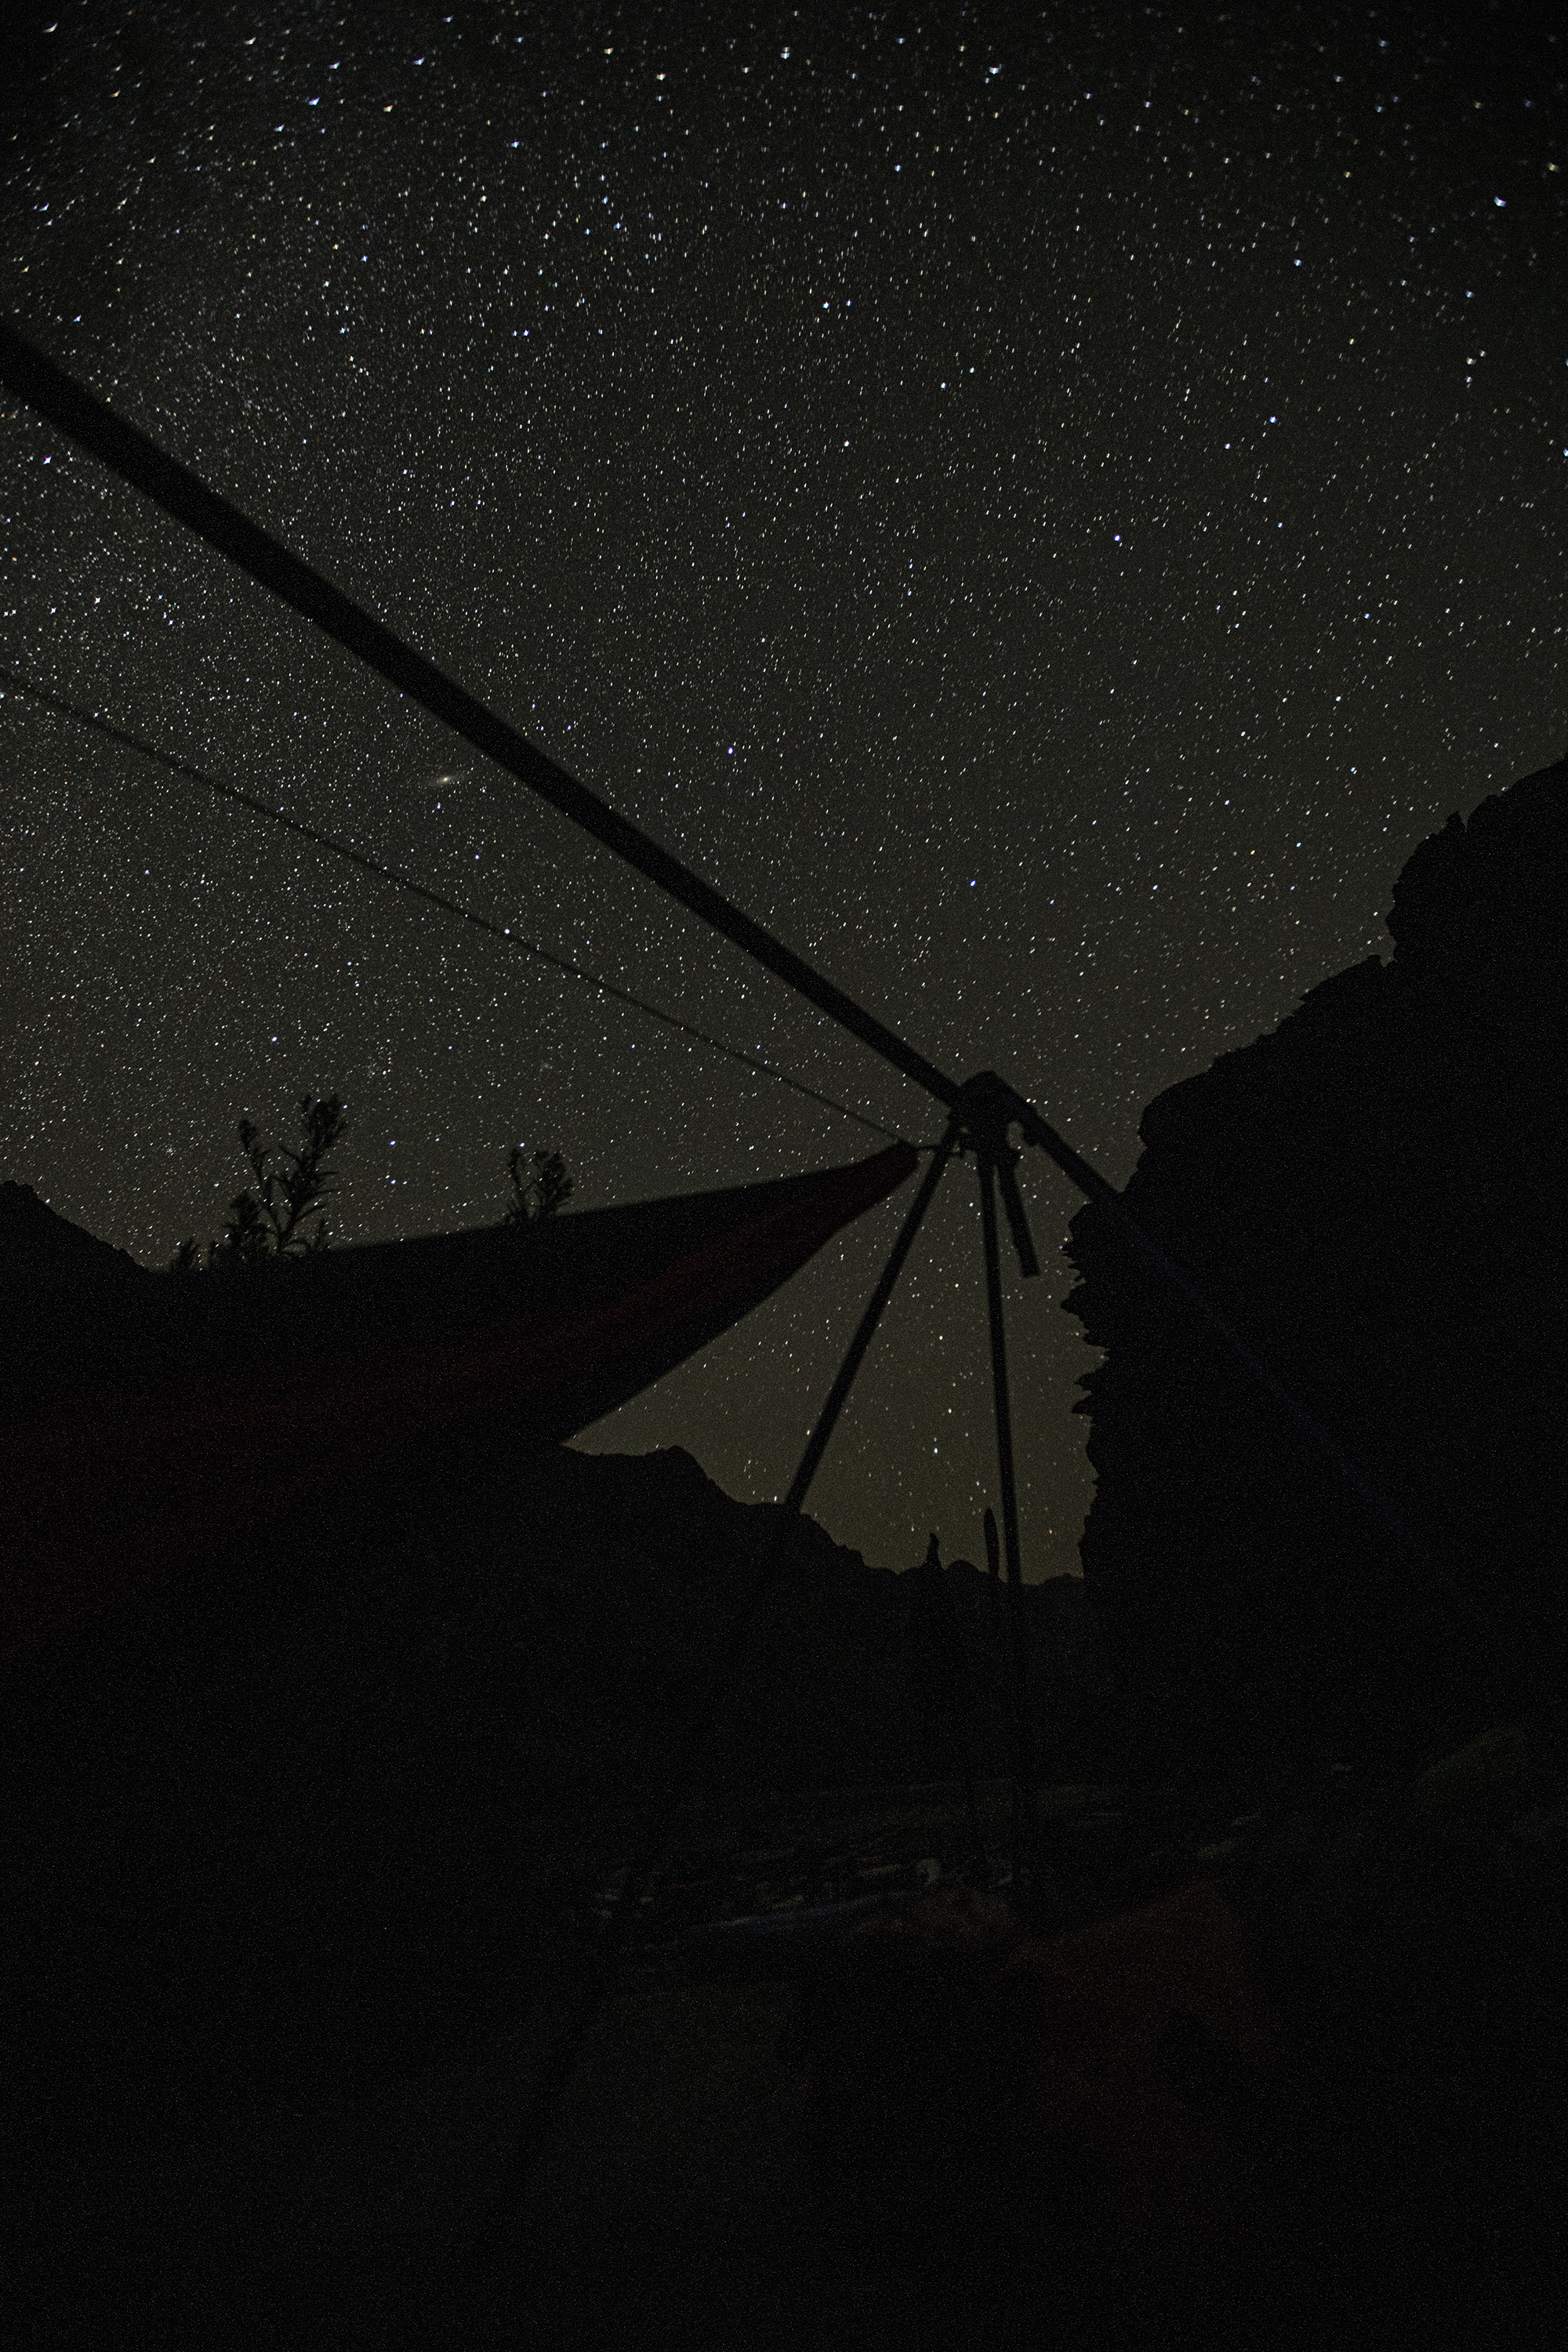 Star gazing at night. Watching meteors from a hammock is incredible.